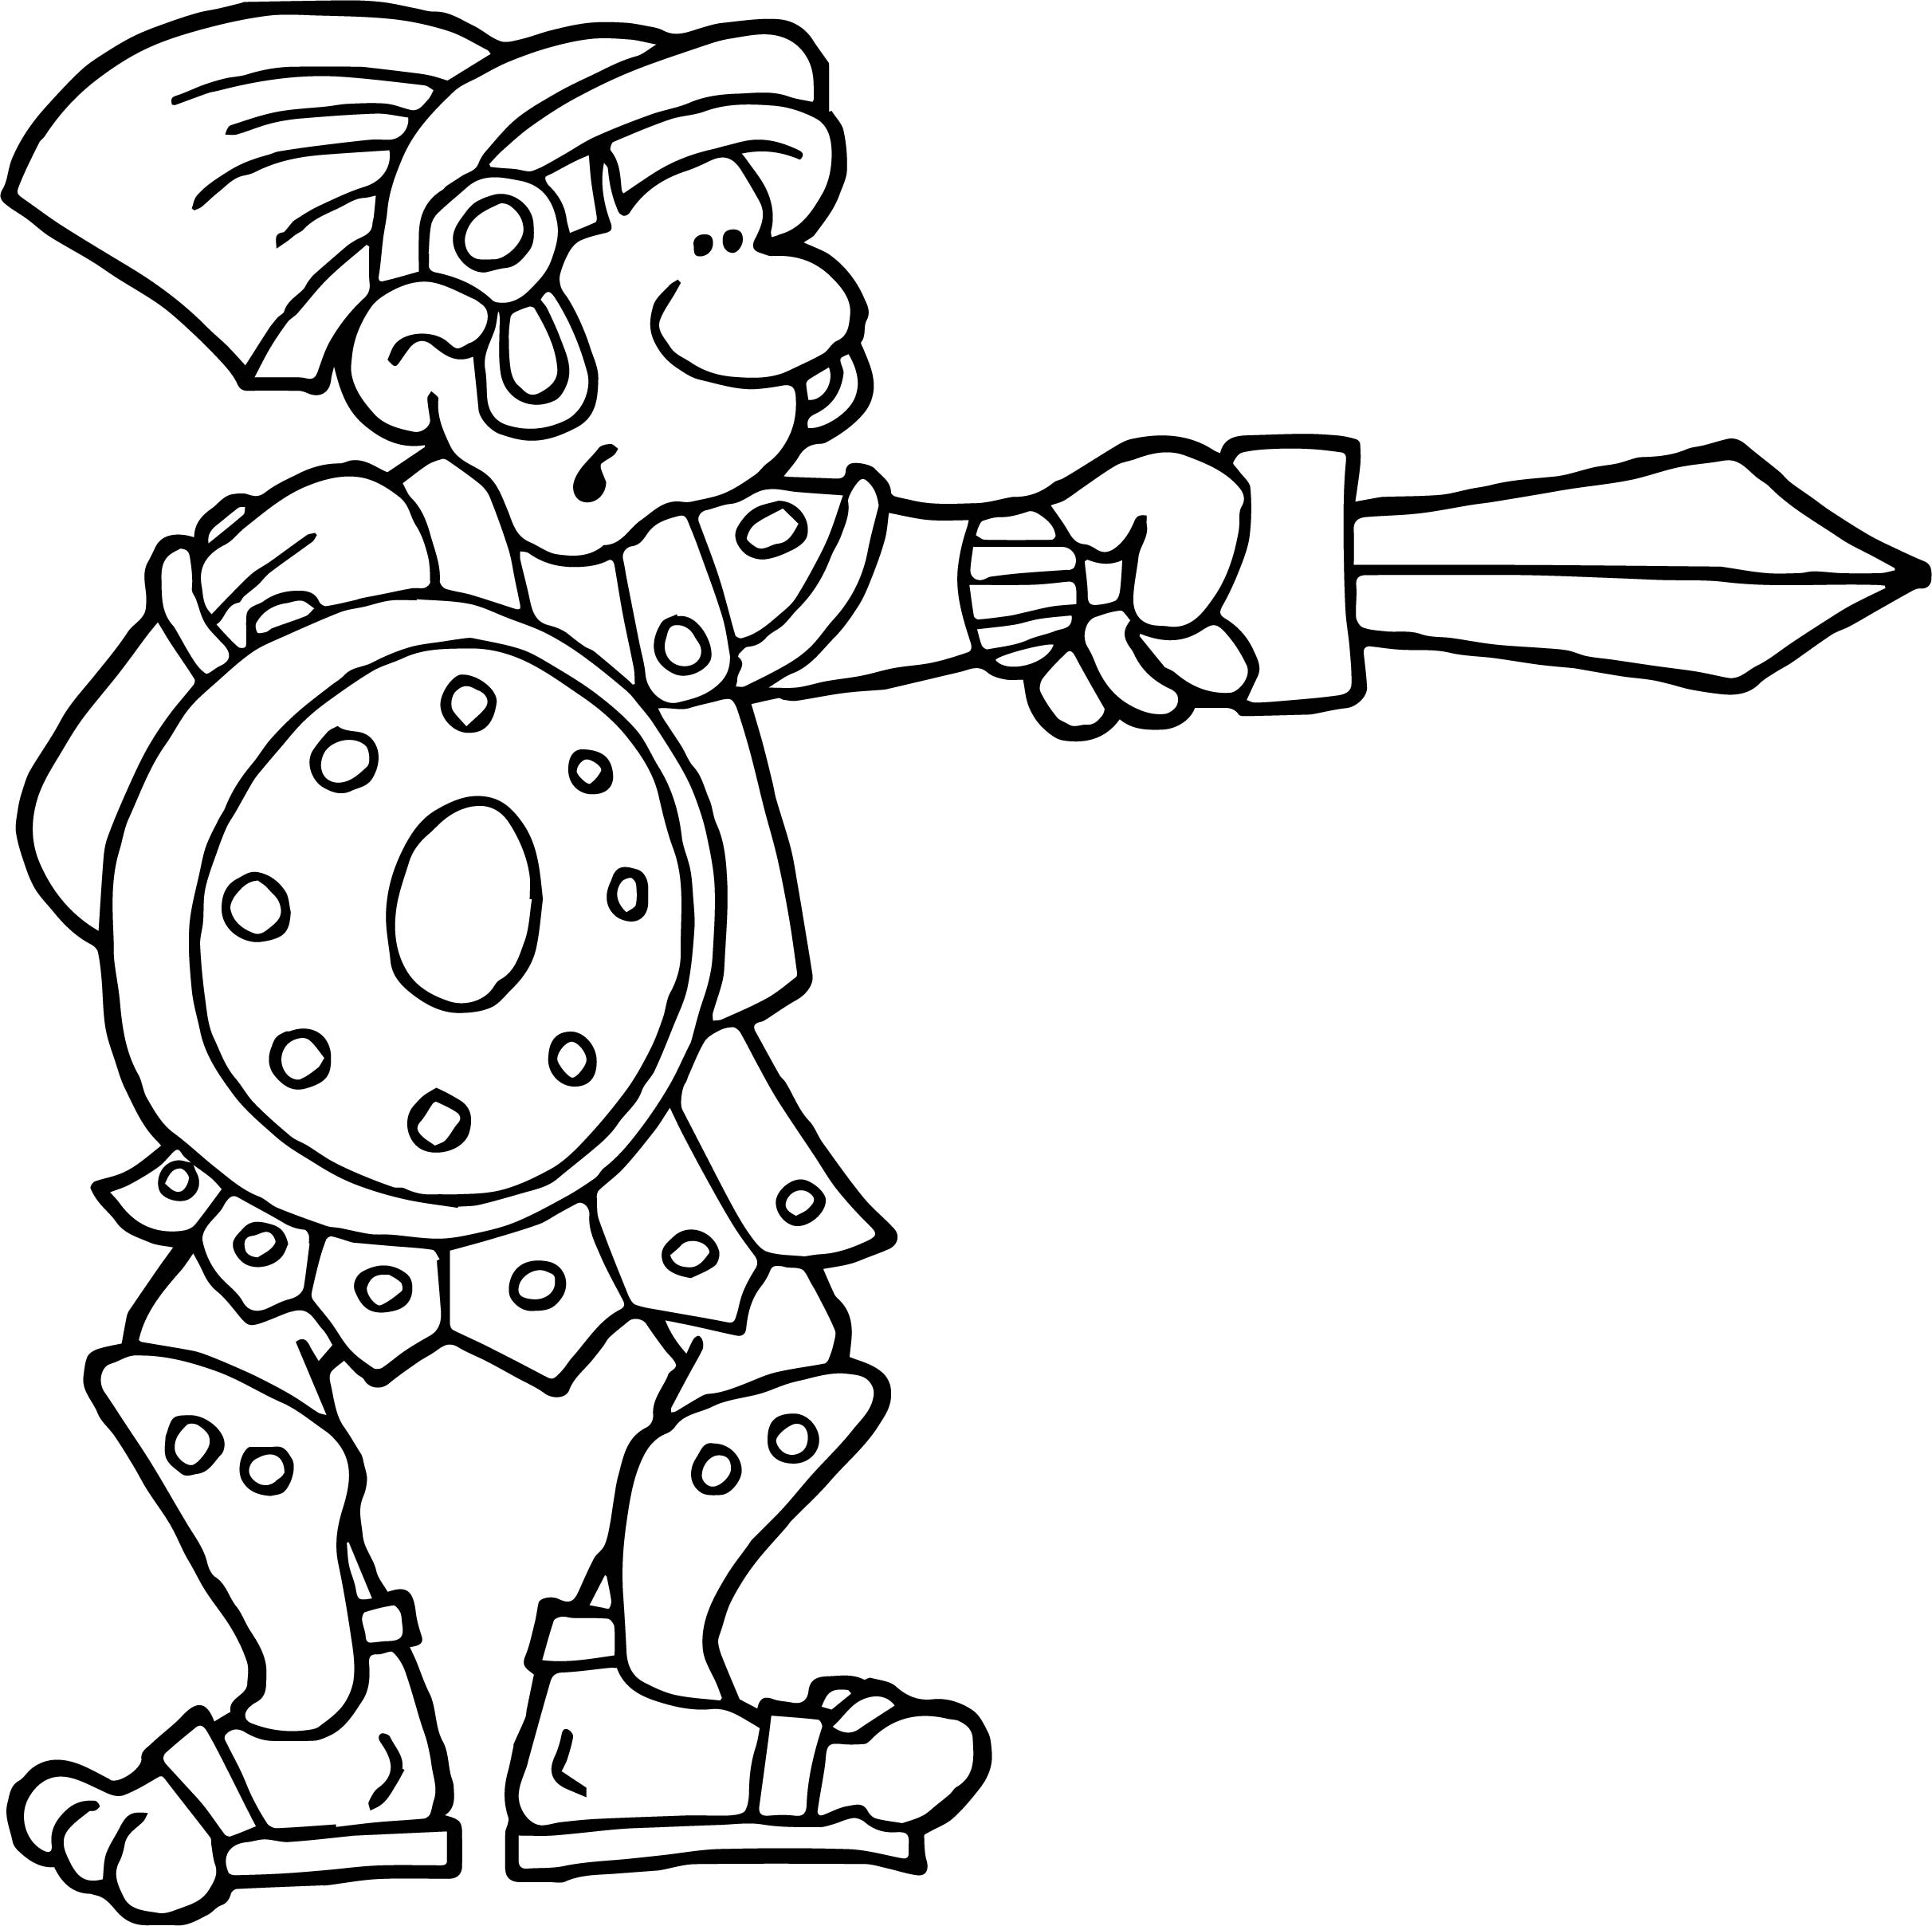 Rome Gladiator Coloring Page